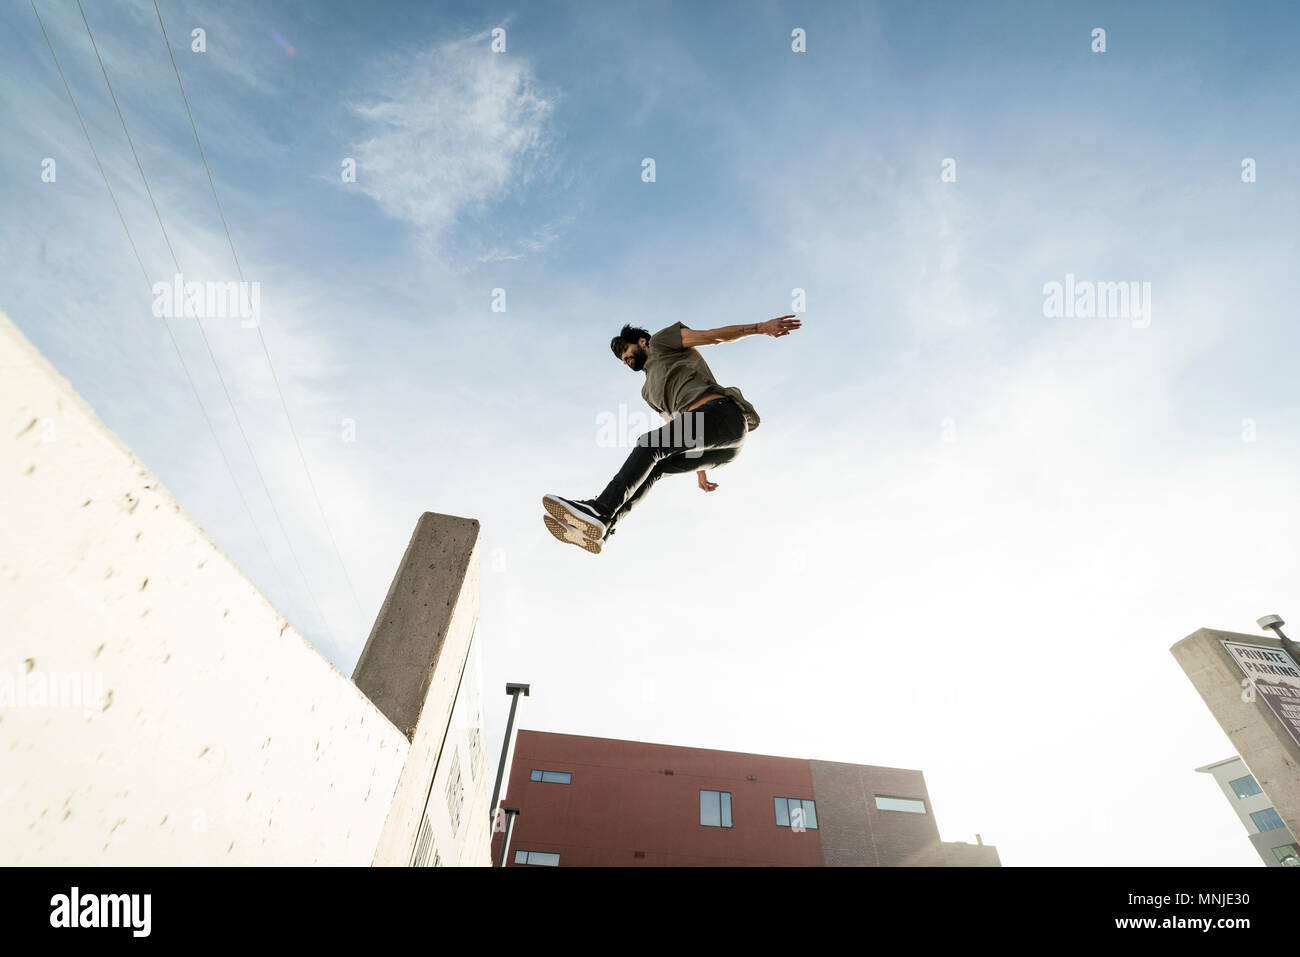 Park athlete jumping into ledge in downtown Denver, Colorado, USA - Stock Image